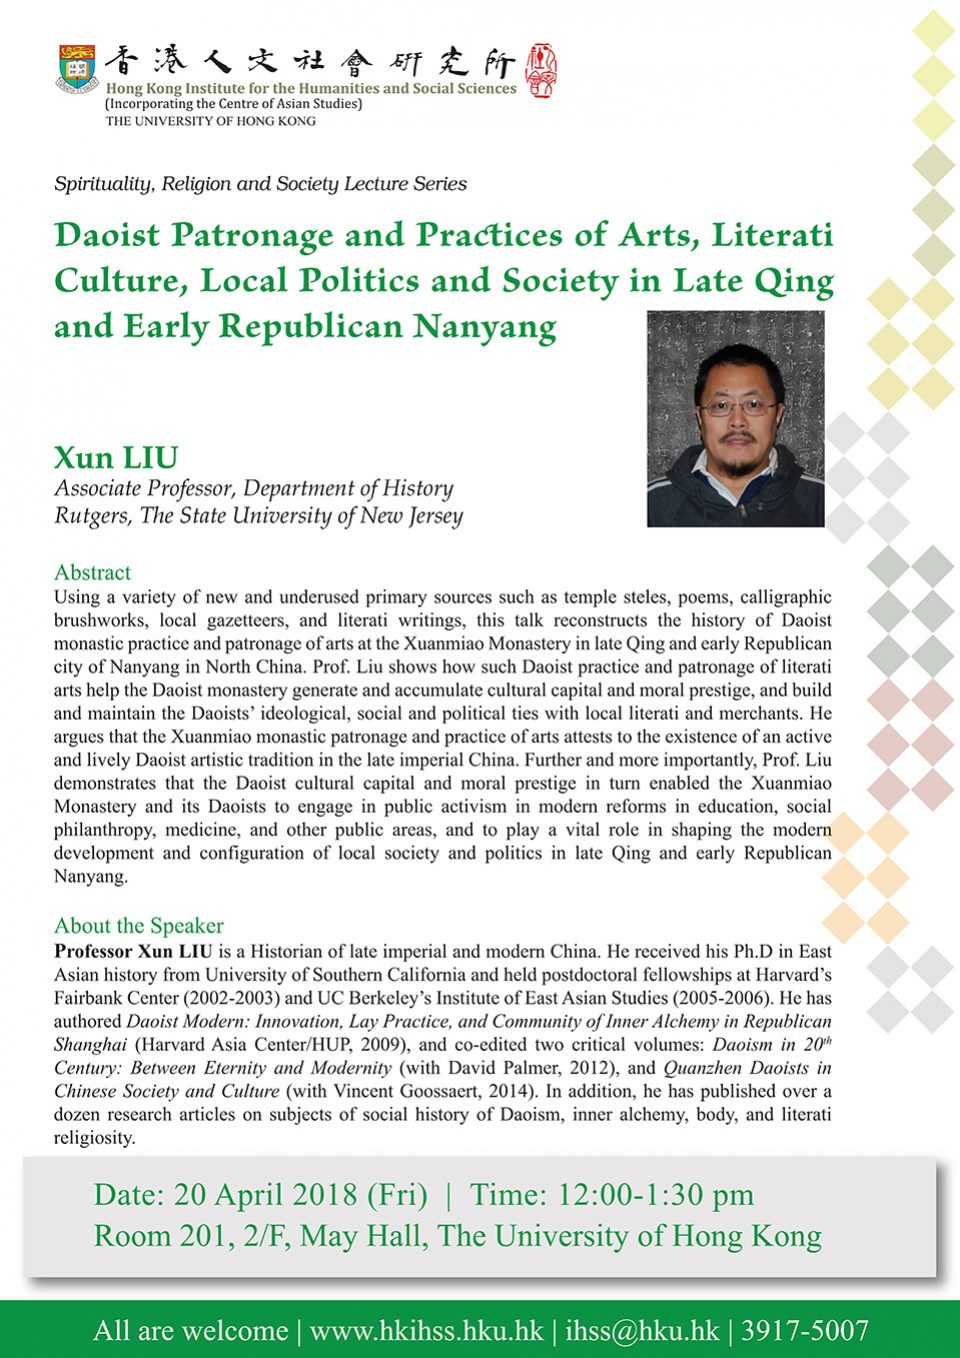 """Spirituality, Religion and Society Lecture Series """"Daoist Patronage and Practices of Arts, Literati Culture, Local Politics and Society in Late Qing and Early Republican Nanyang"""" by Professor Xun Liu (April 20, 2018)"""